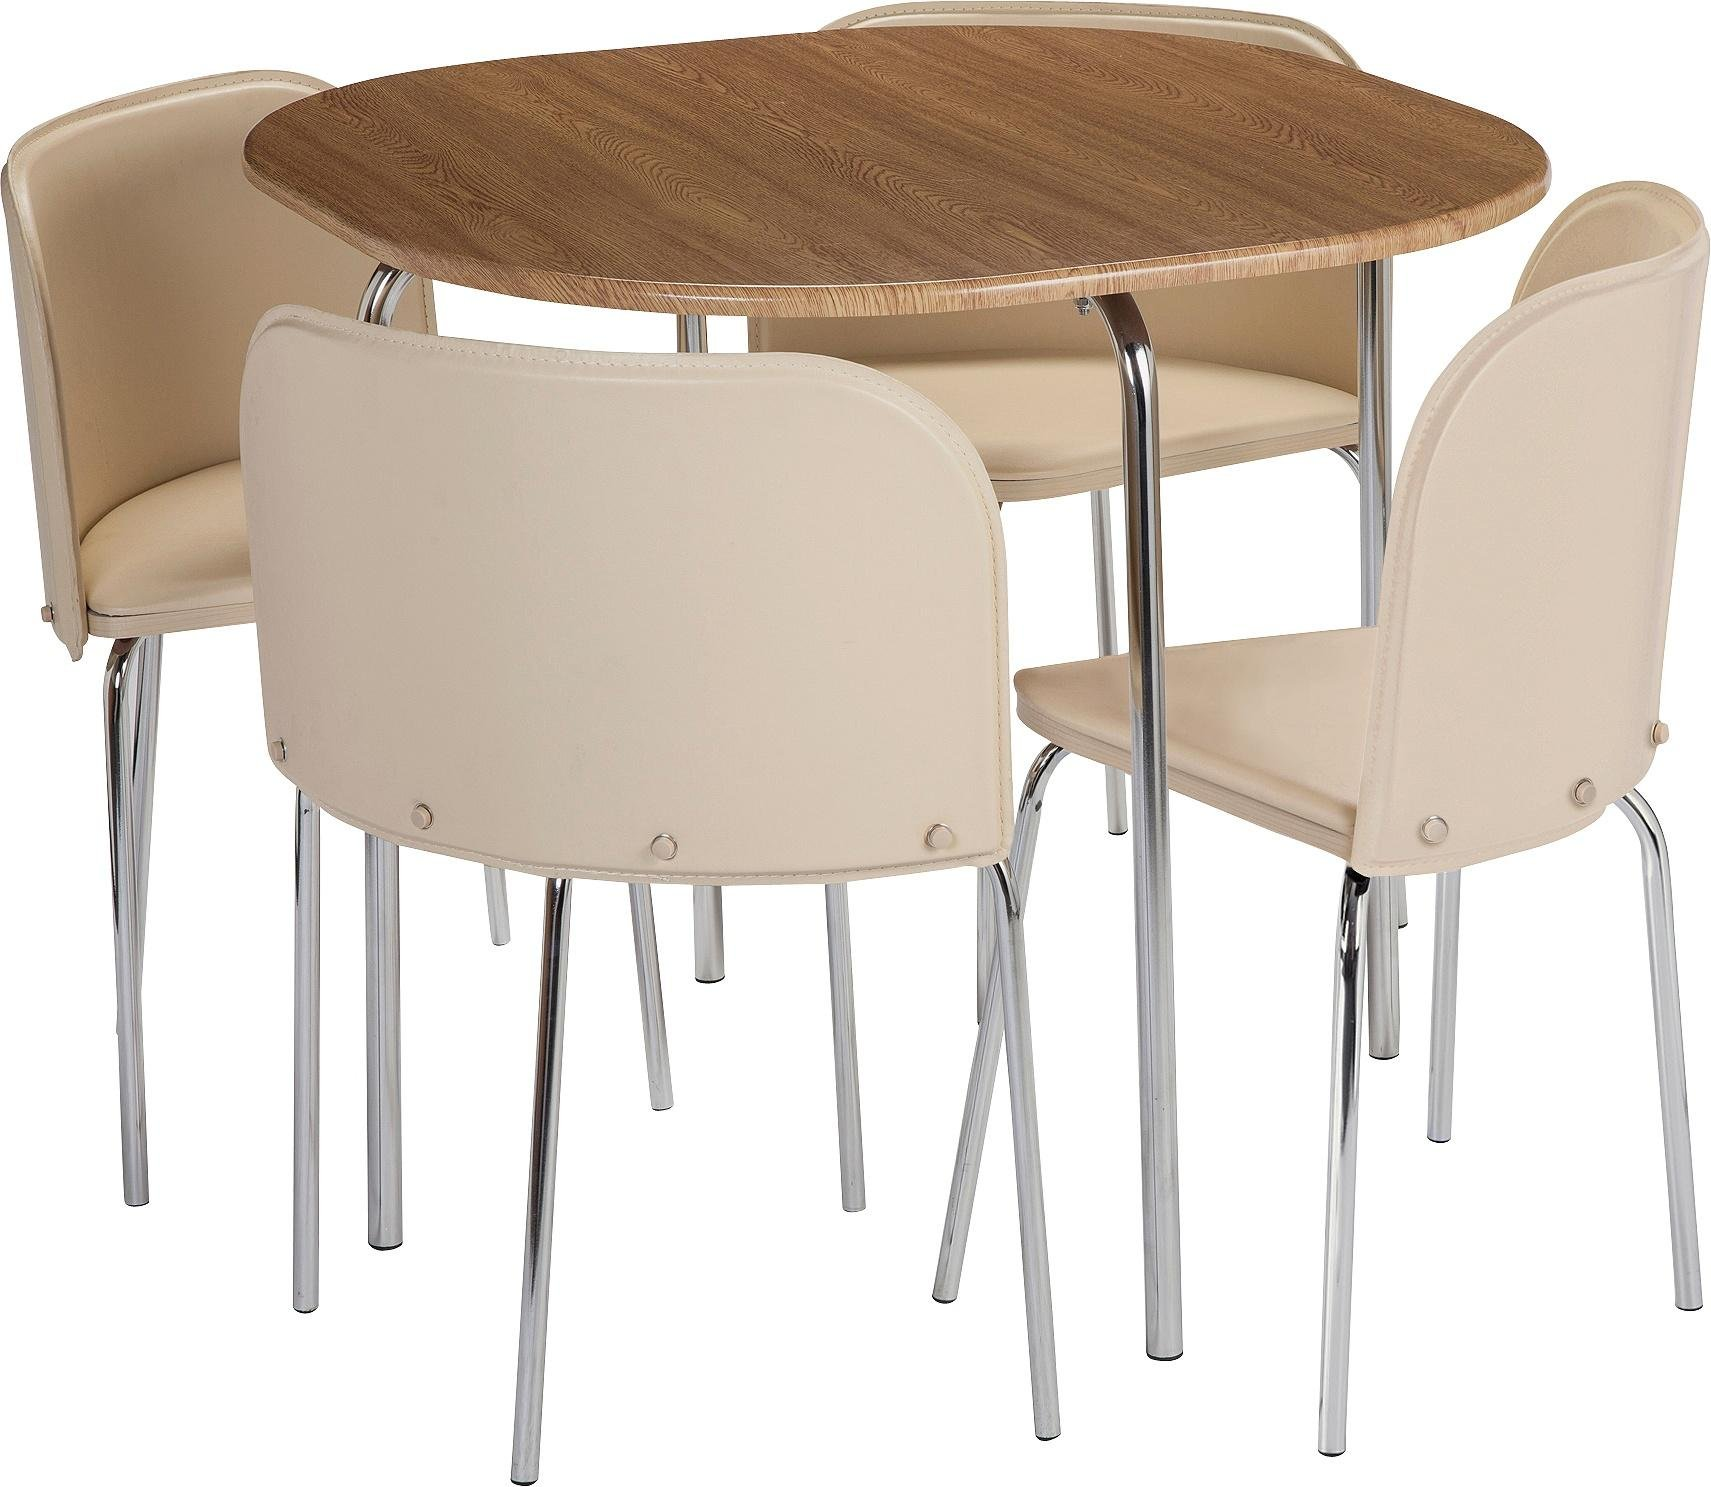 Buy Hygena Amparo Oak Effect Dining Table and 4 Chairs  : 6006541RZ001AUC1662284Webampw570amph513 from www.argos.co.uk size 570 x 513 jpeg 31kB